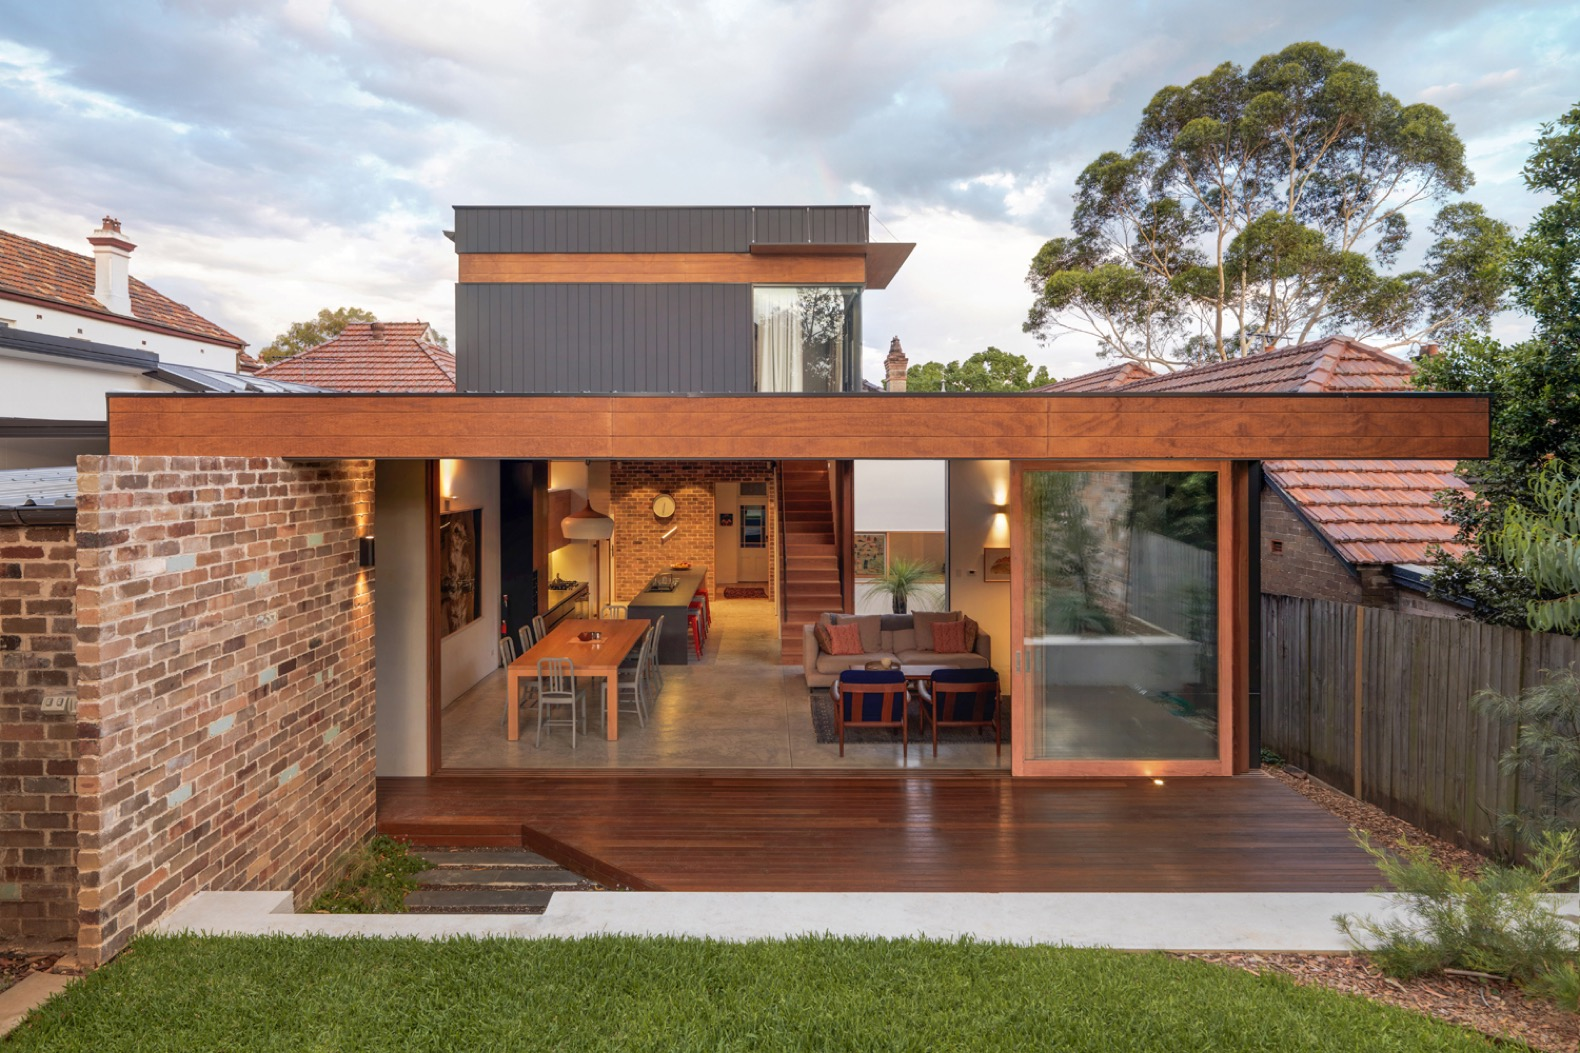 Anderson Architecture revamps a dim heritage home into a modern sun-soaked abode